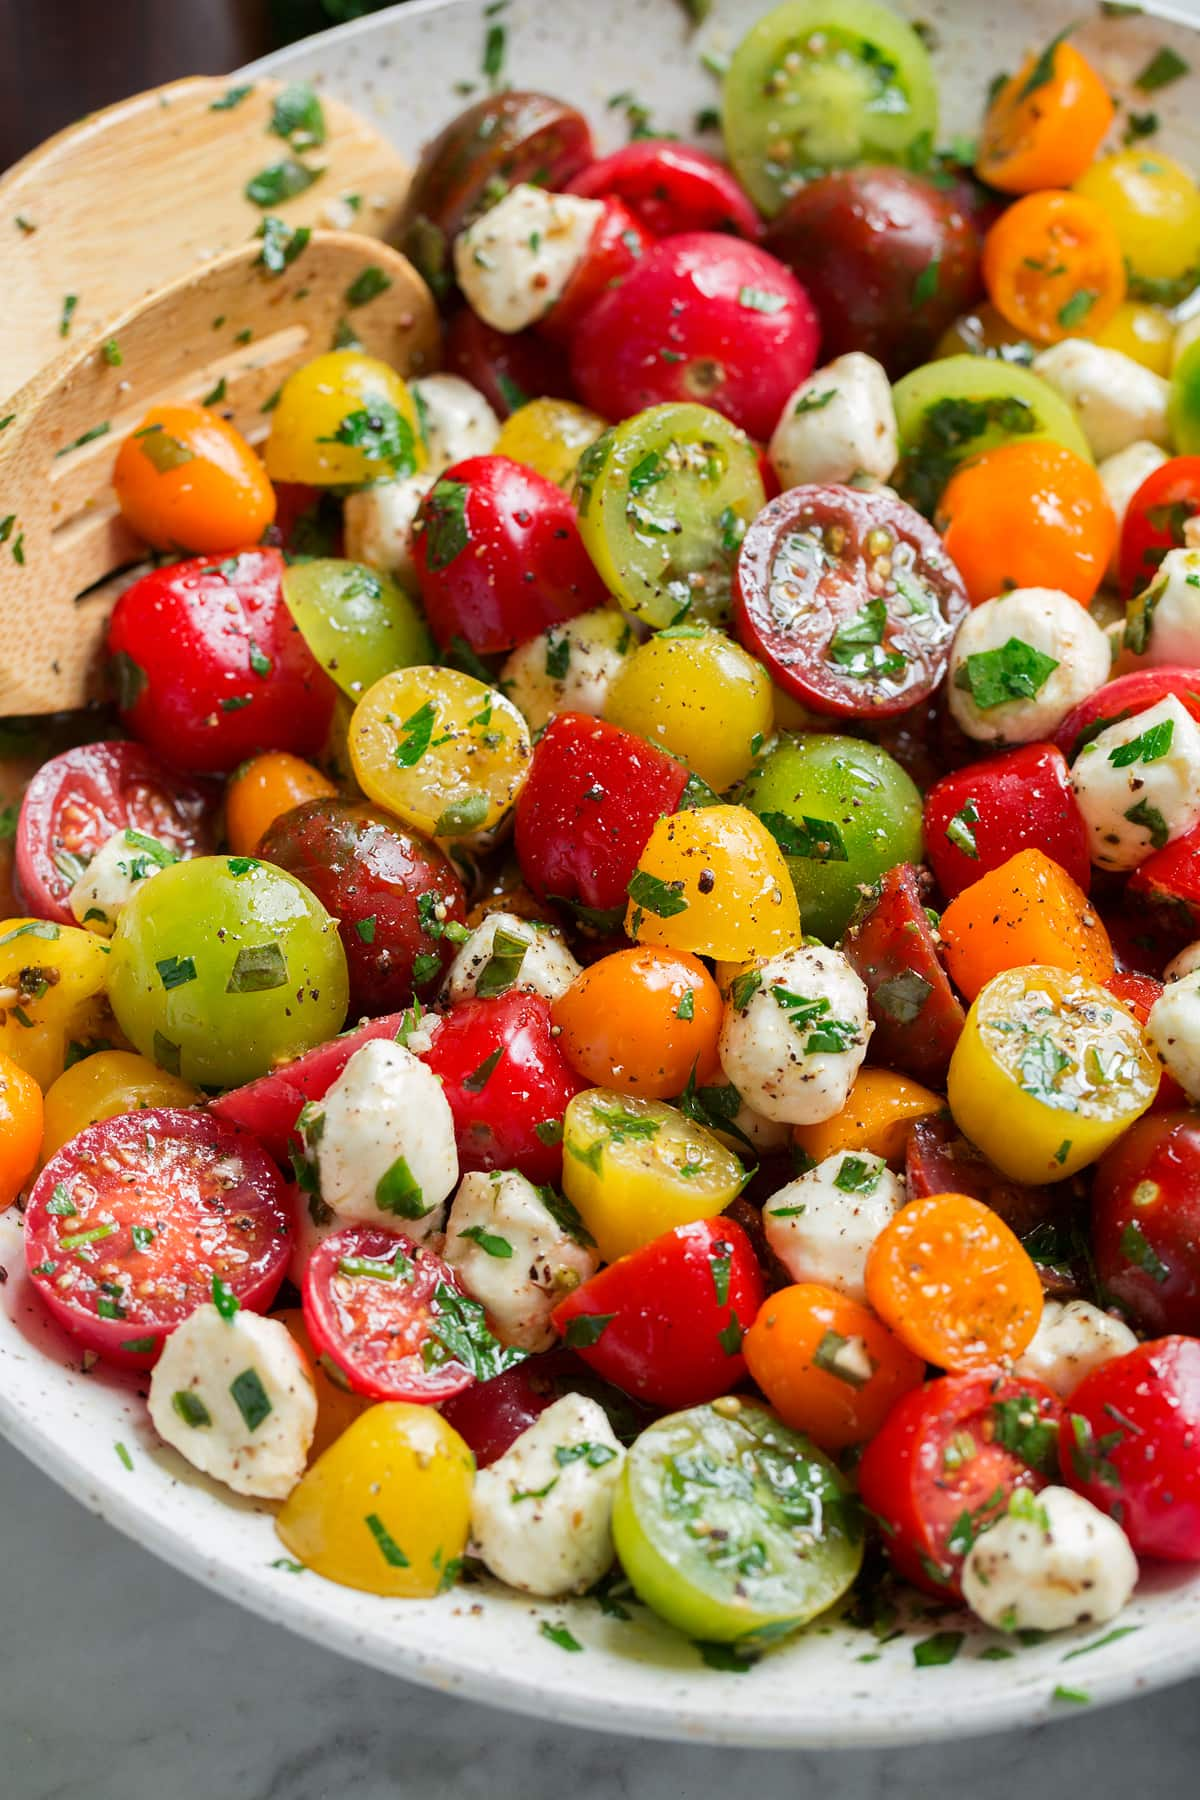 Image showing tomato salad from a side angle in a serving bowl.